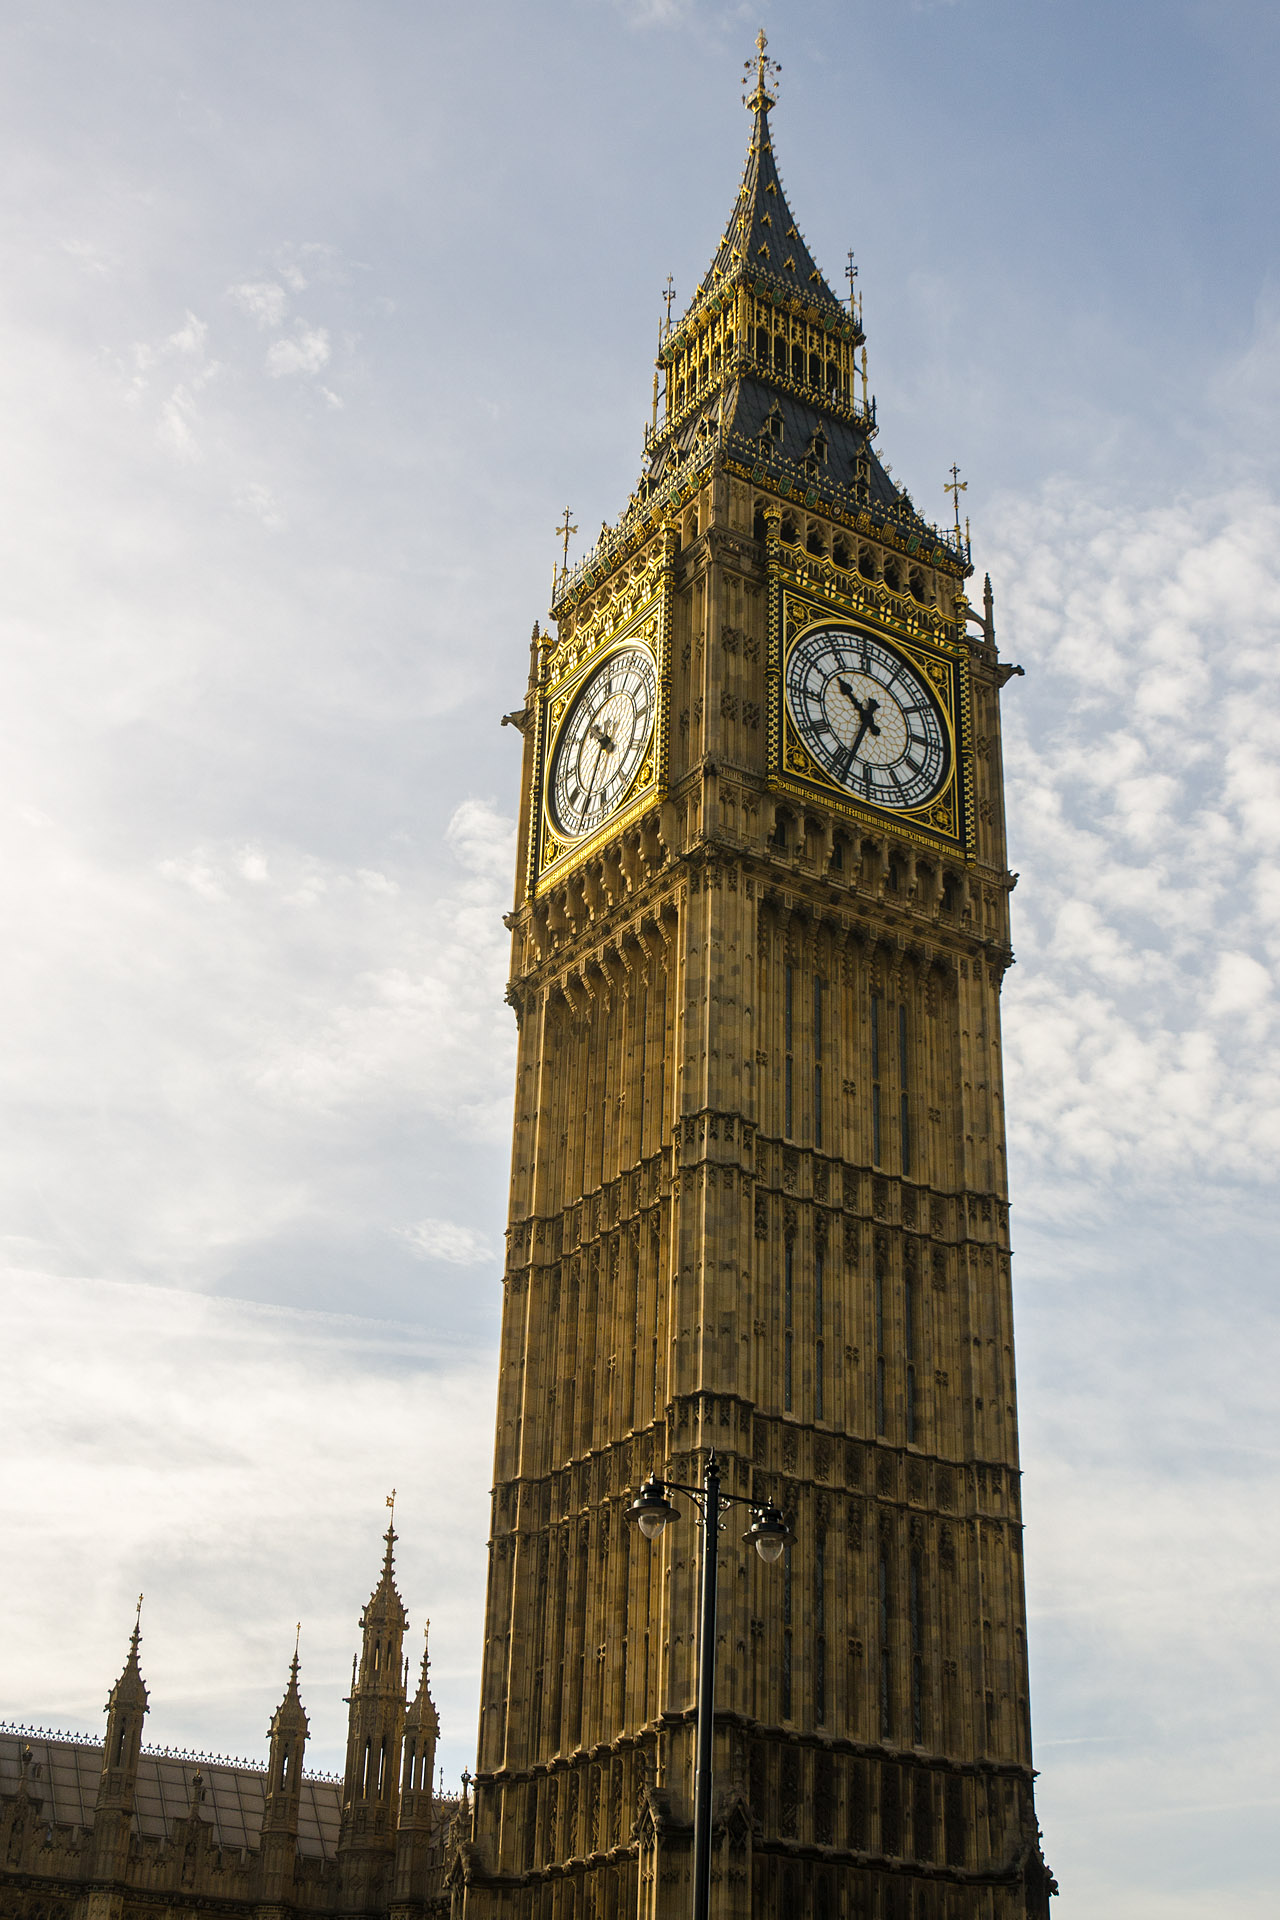 'Big Ben' (Elizabeth Tower)